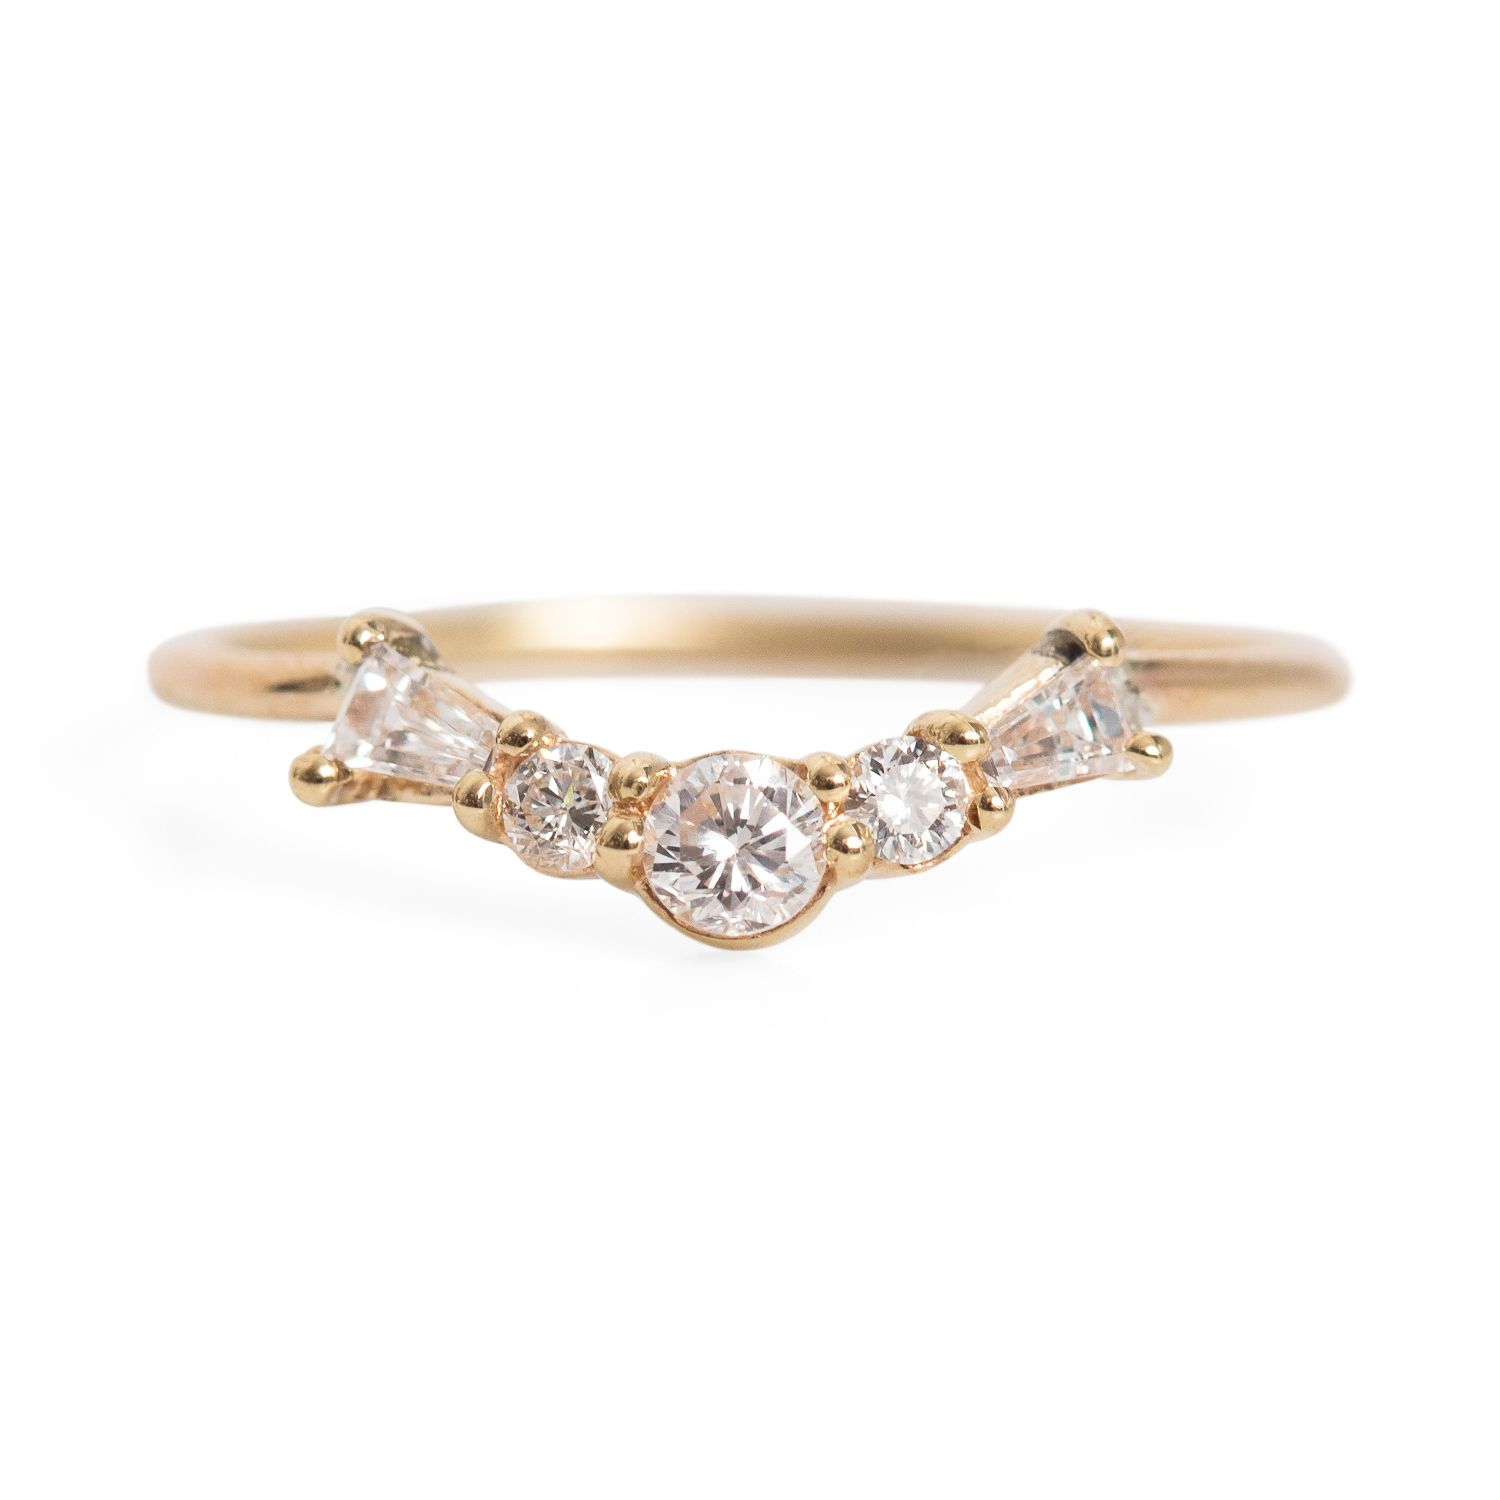 white engagement diamond lane hover en carat rings zm gold zoom diamonds tw ct neil to ring jaredstore mv blingy jared jar bridal